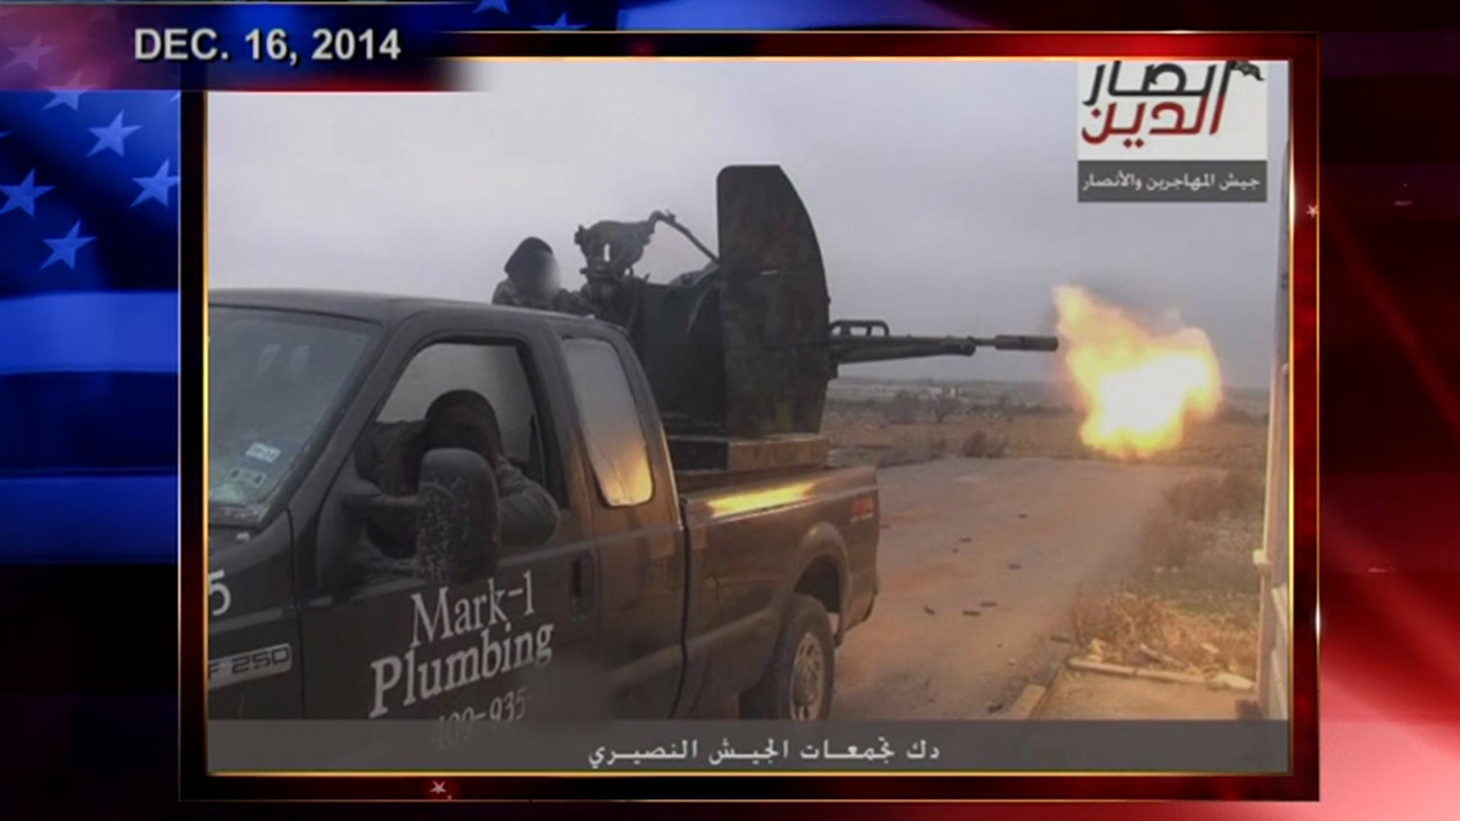 A plumber in Texas has filed suit over a picture falsely linking him to jihadists in Syria.